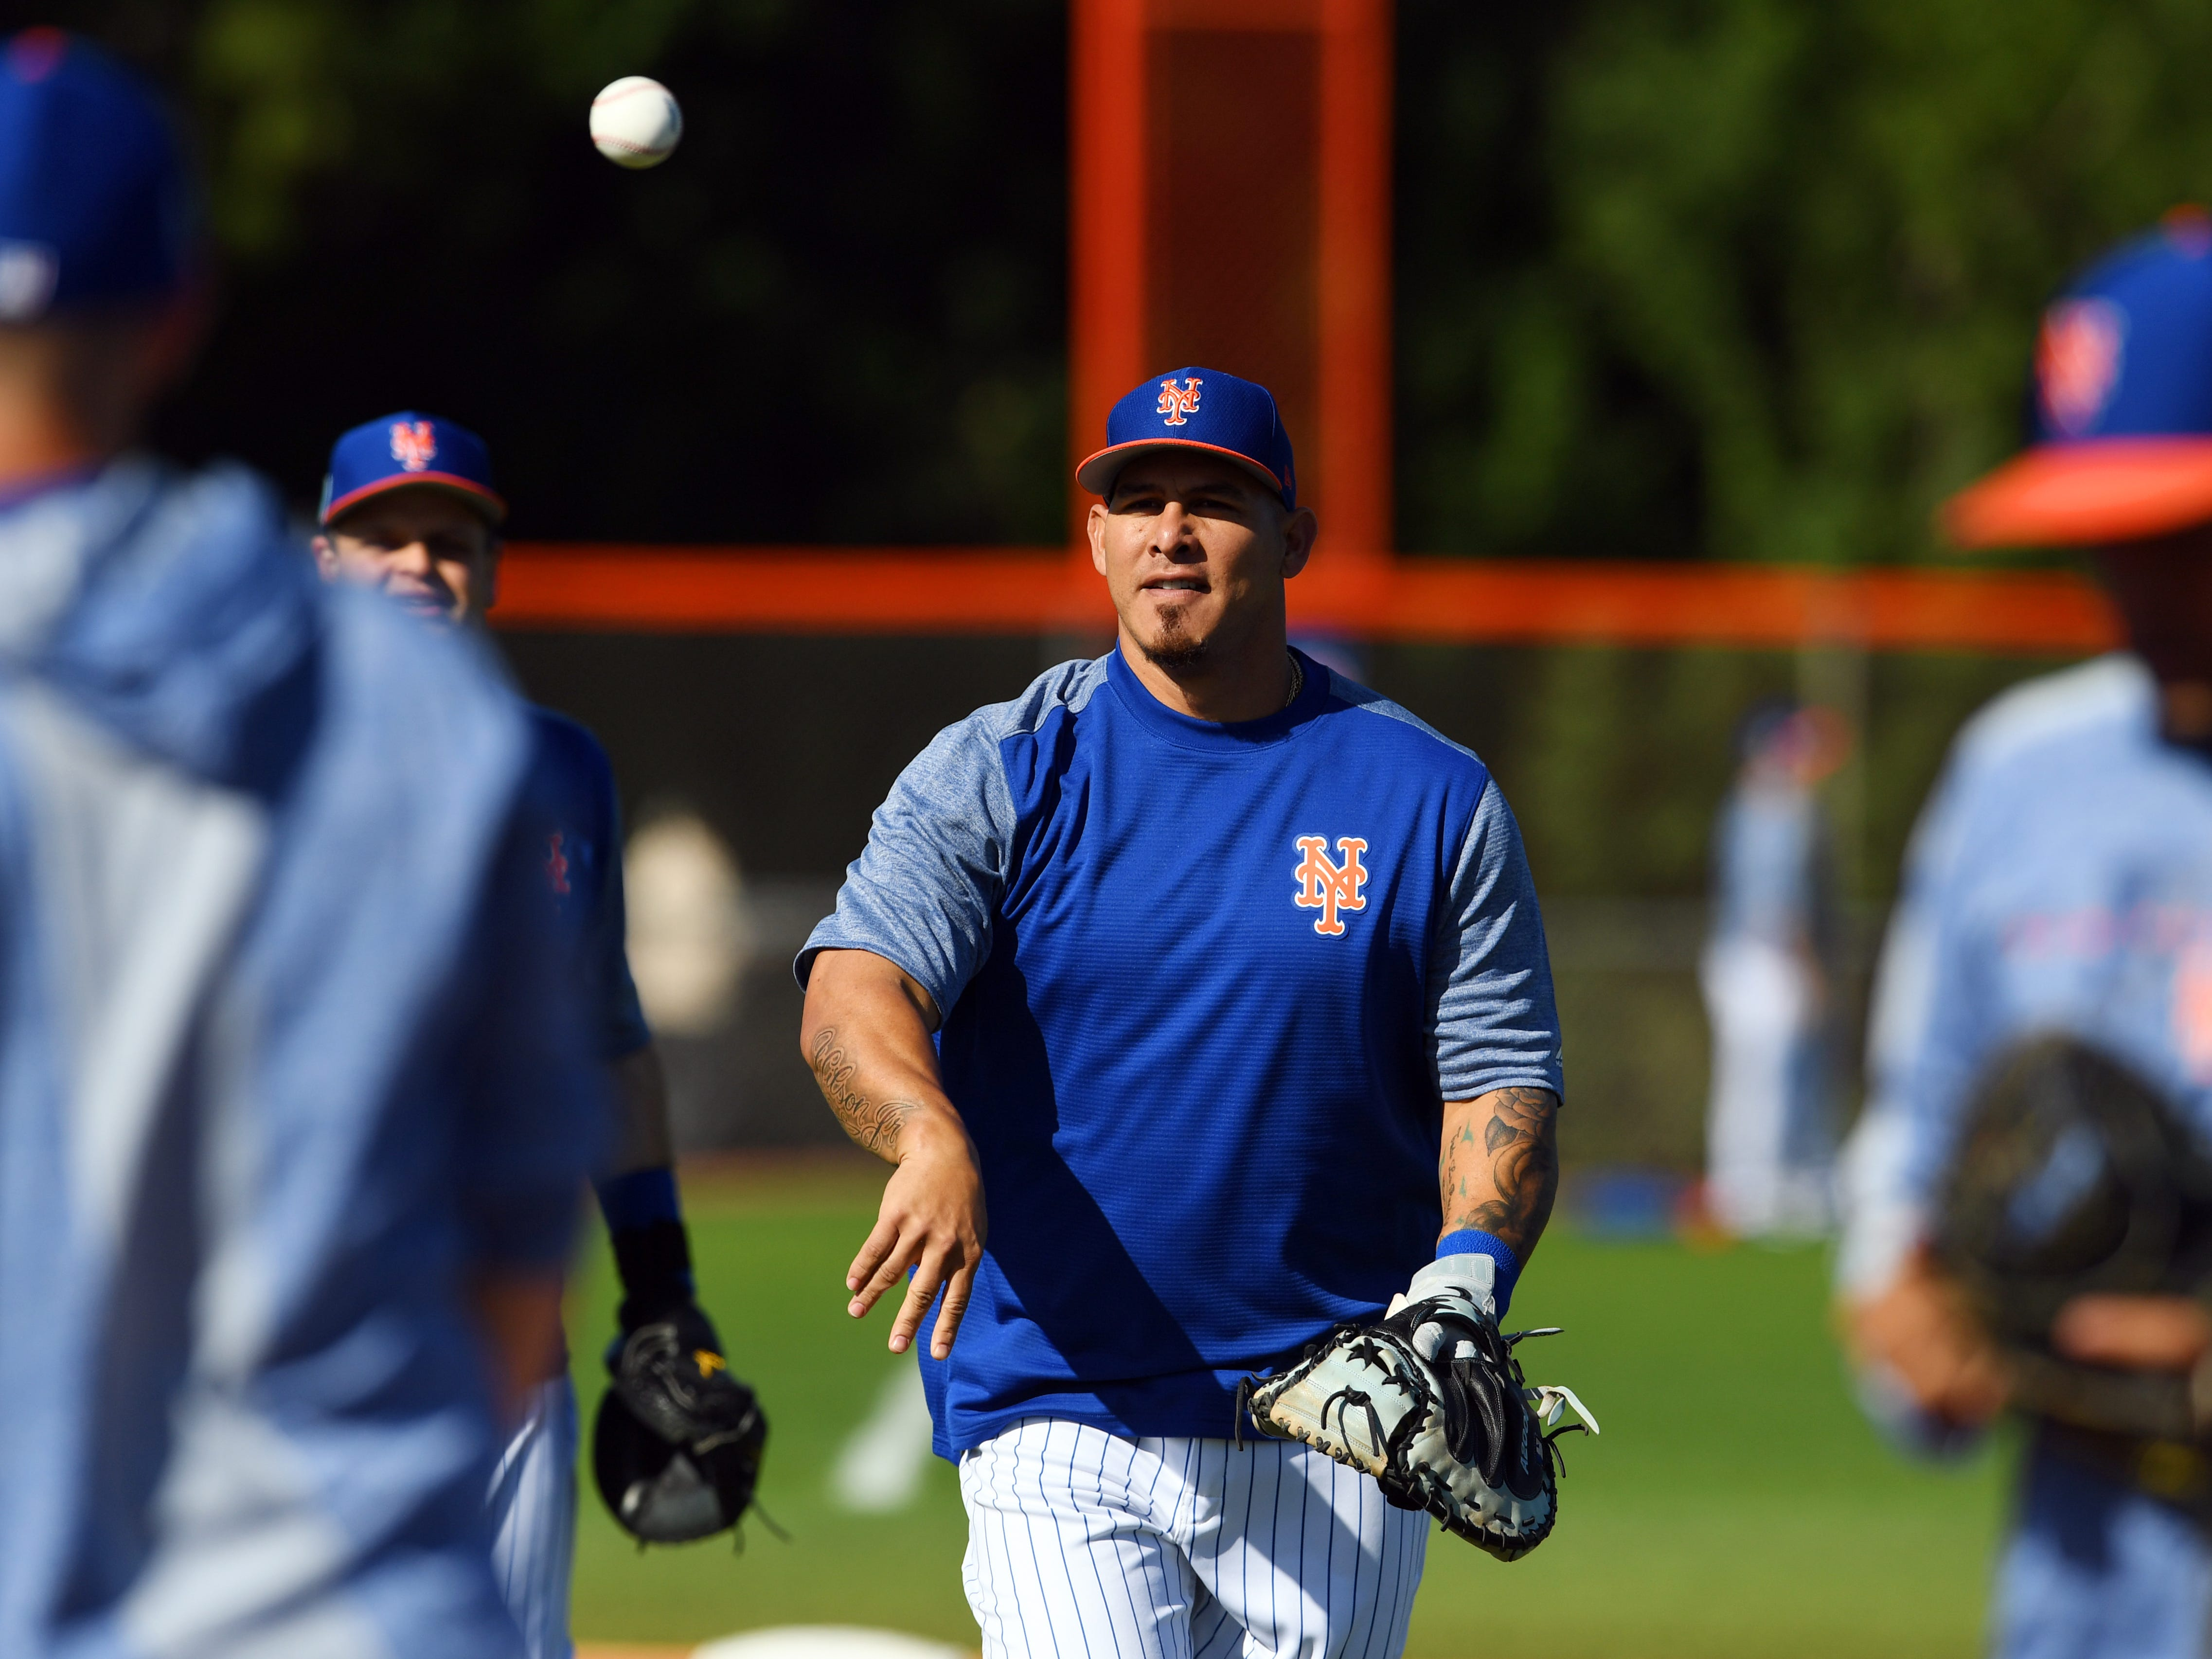 New York Mets catcher Wilson Ramos runs through morning drills on Thursday, Feb. 14, 2019 during an official spring training workout for pitchers and catchers at First Data Field in Port St. Lucie.